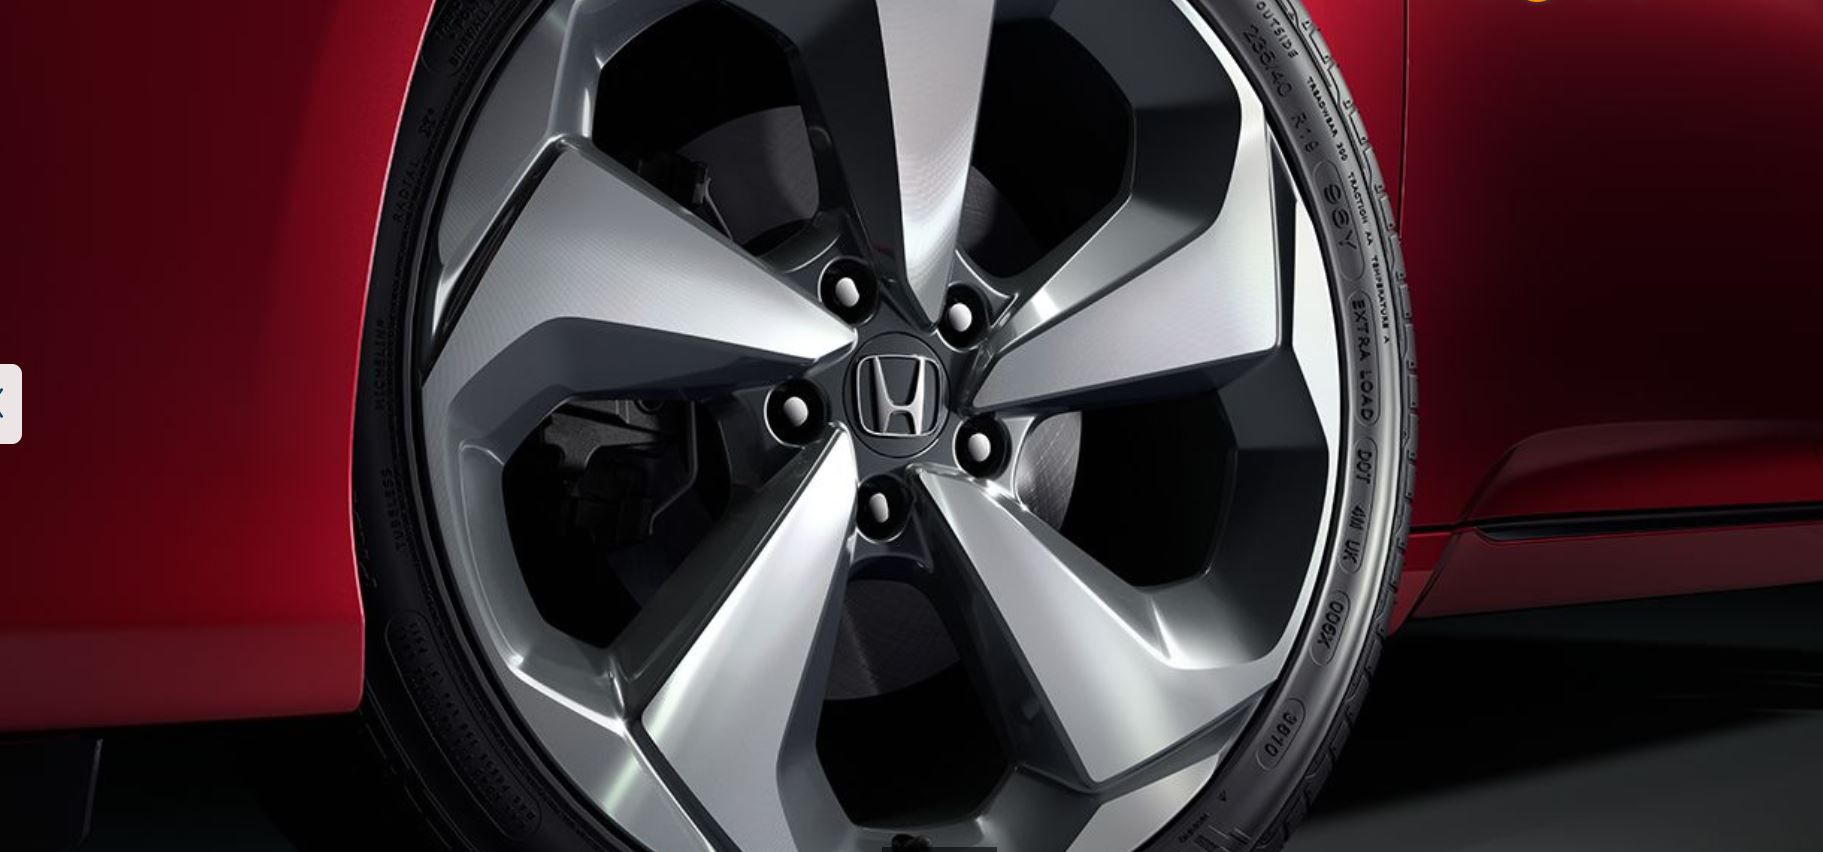 Honda Accord Lease Offers Prices New Britain Ct Tires On Sale Now At Schaller